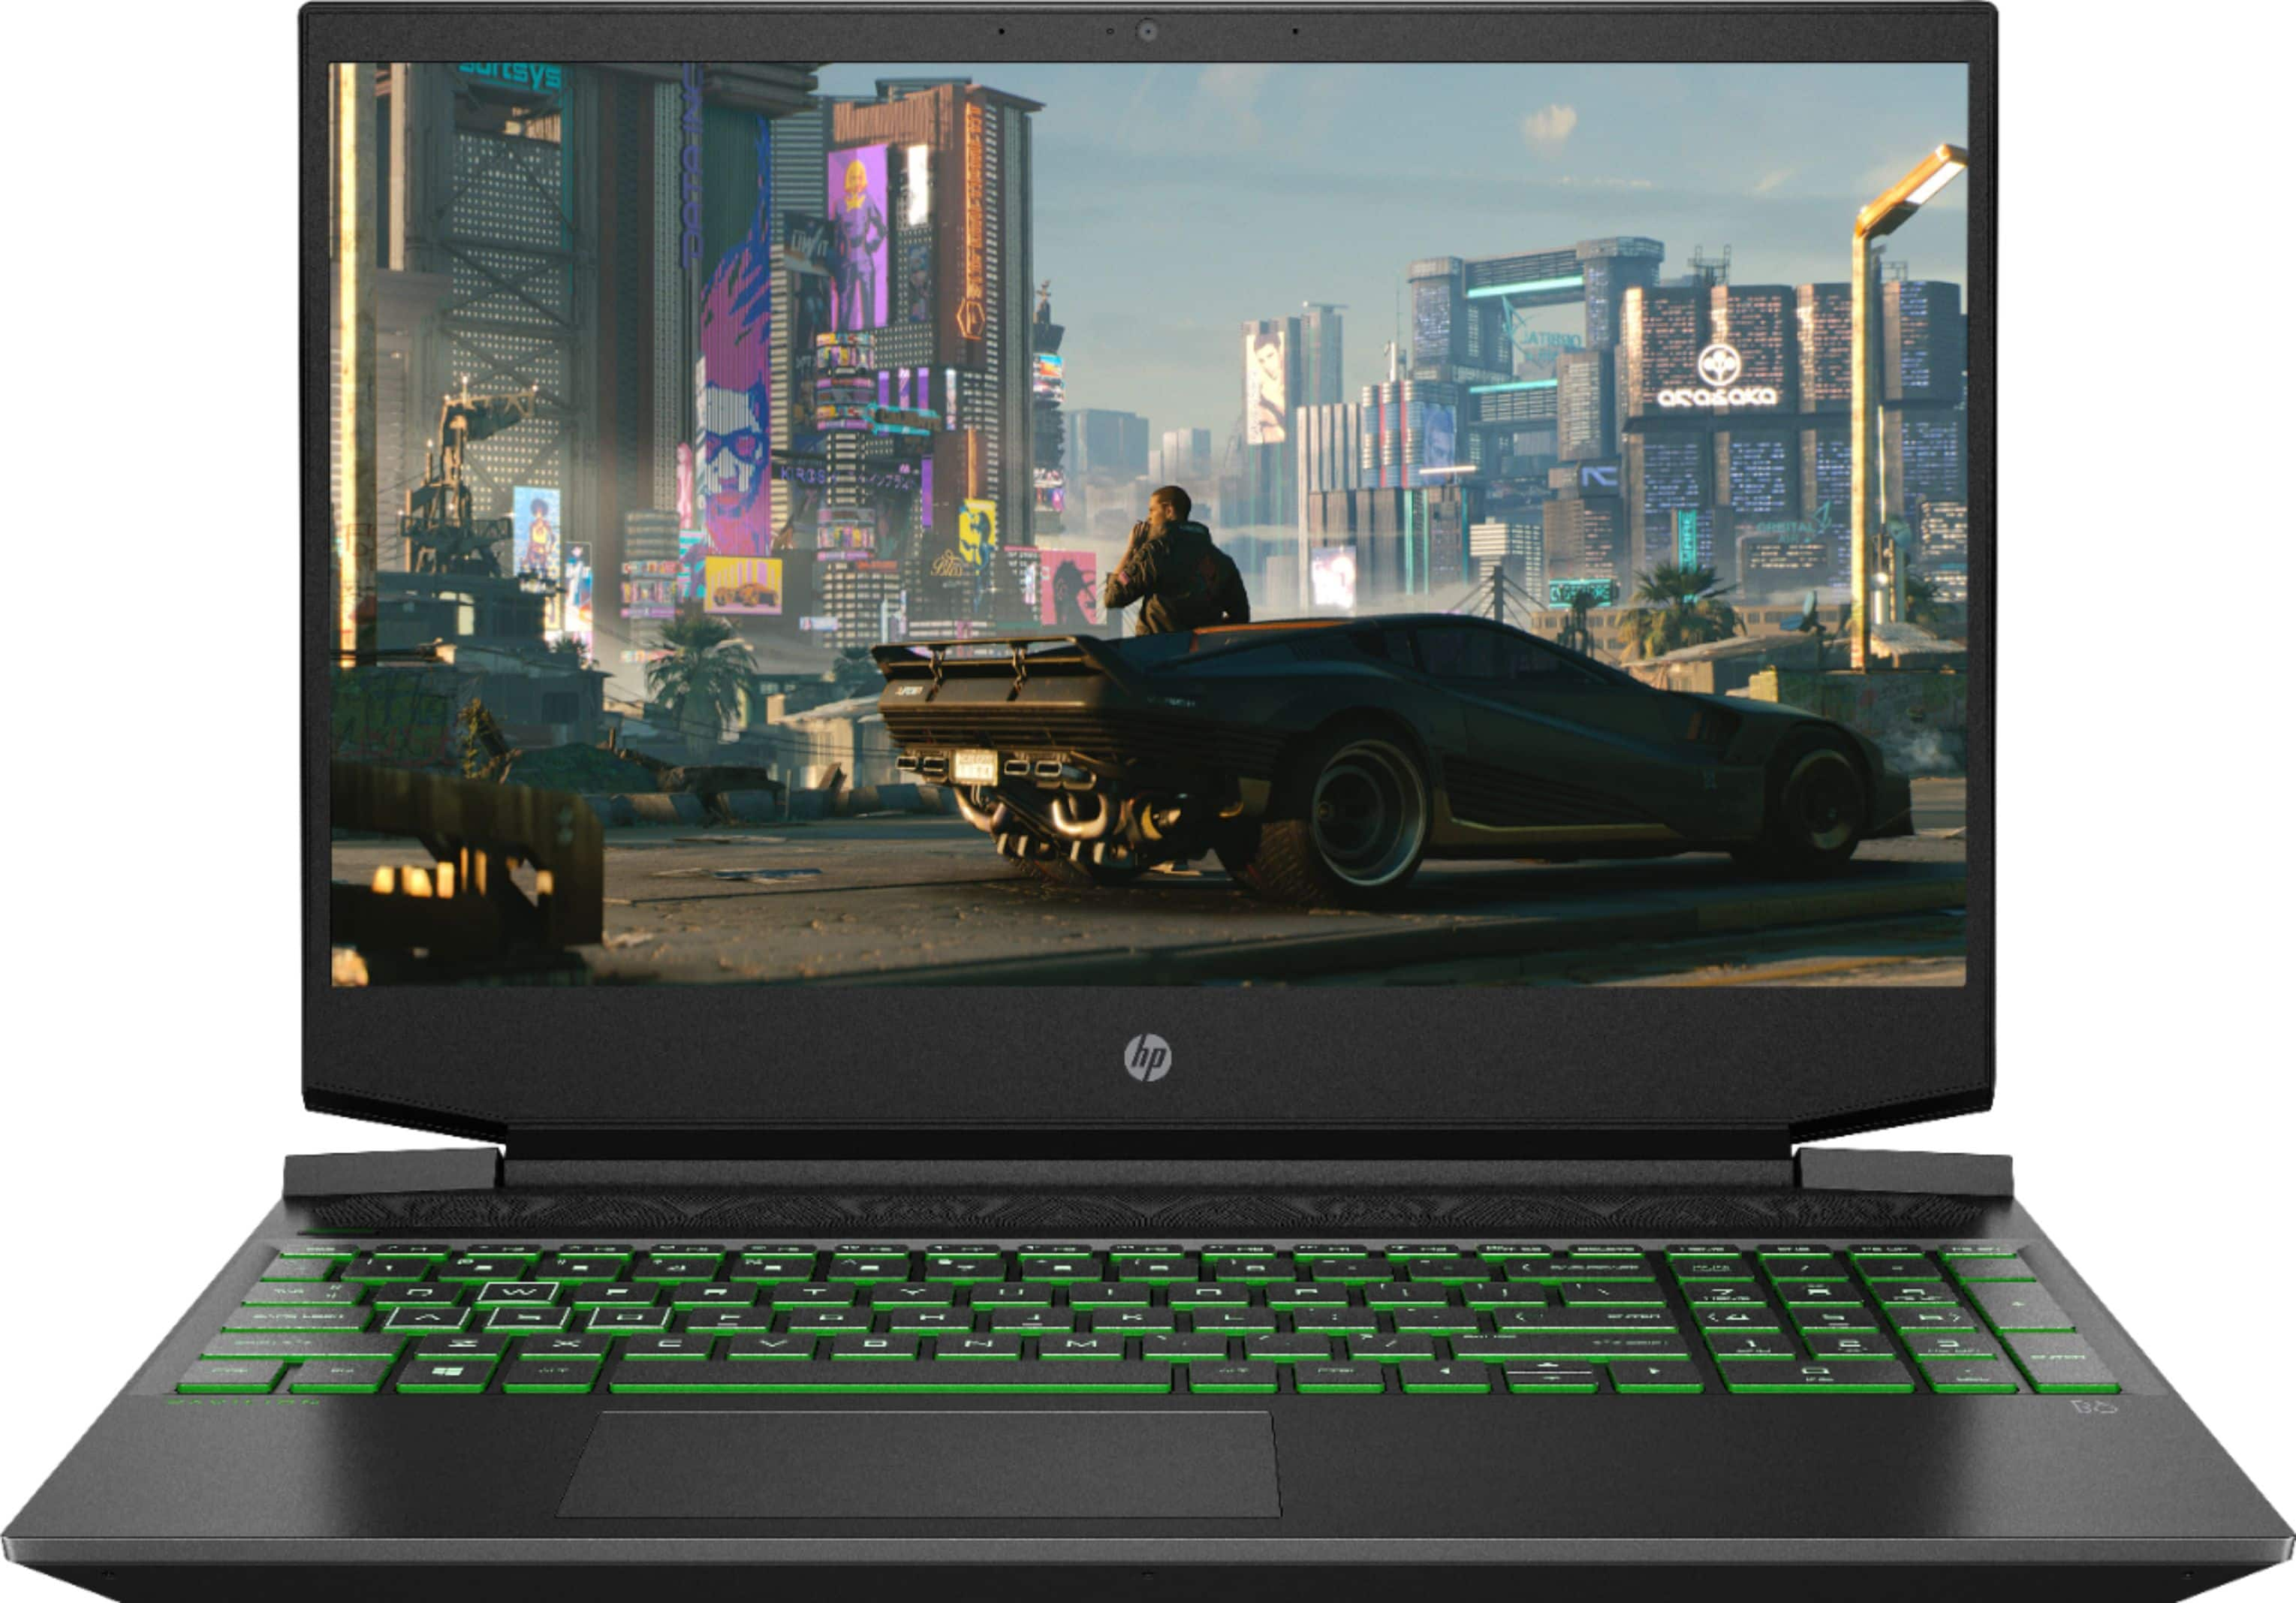 "HP Pavilion 15.6"" Gaming Laptop AMD Ryzen 5 8GB Memory NVIDIA GeForce GTX 1650 256GB SSD Shadow Black 15-ec1073dx - Best Buy"